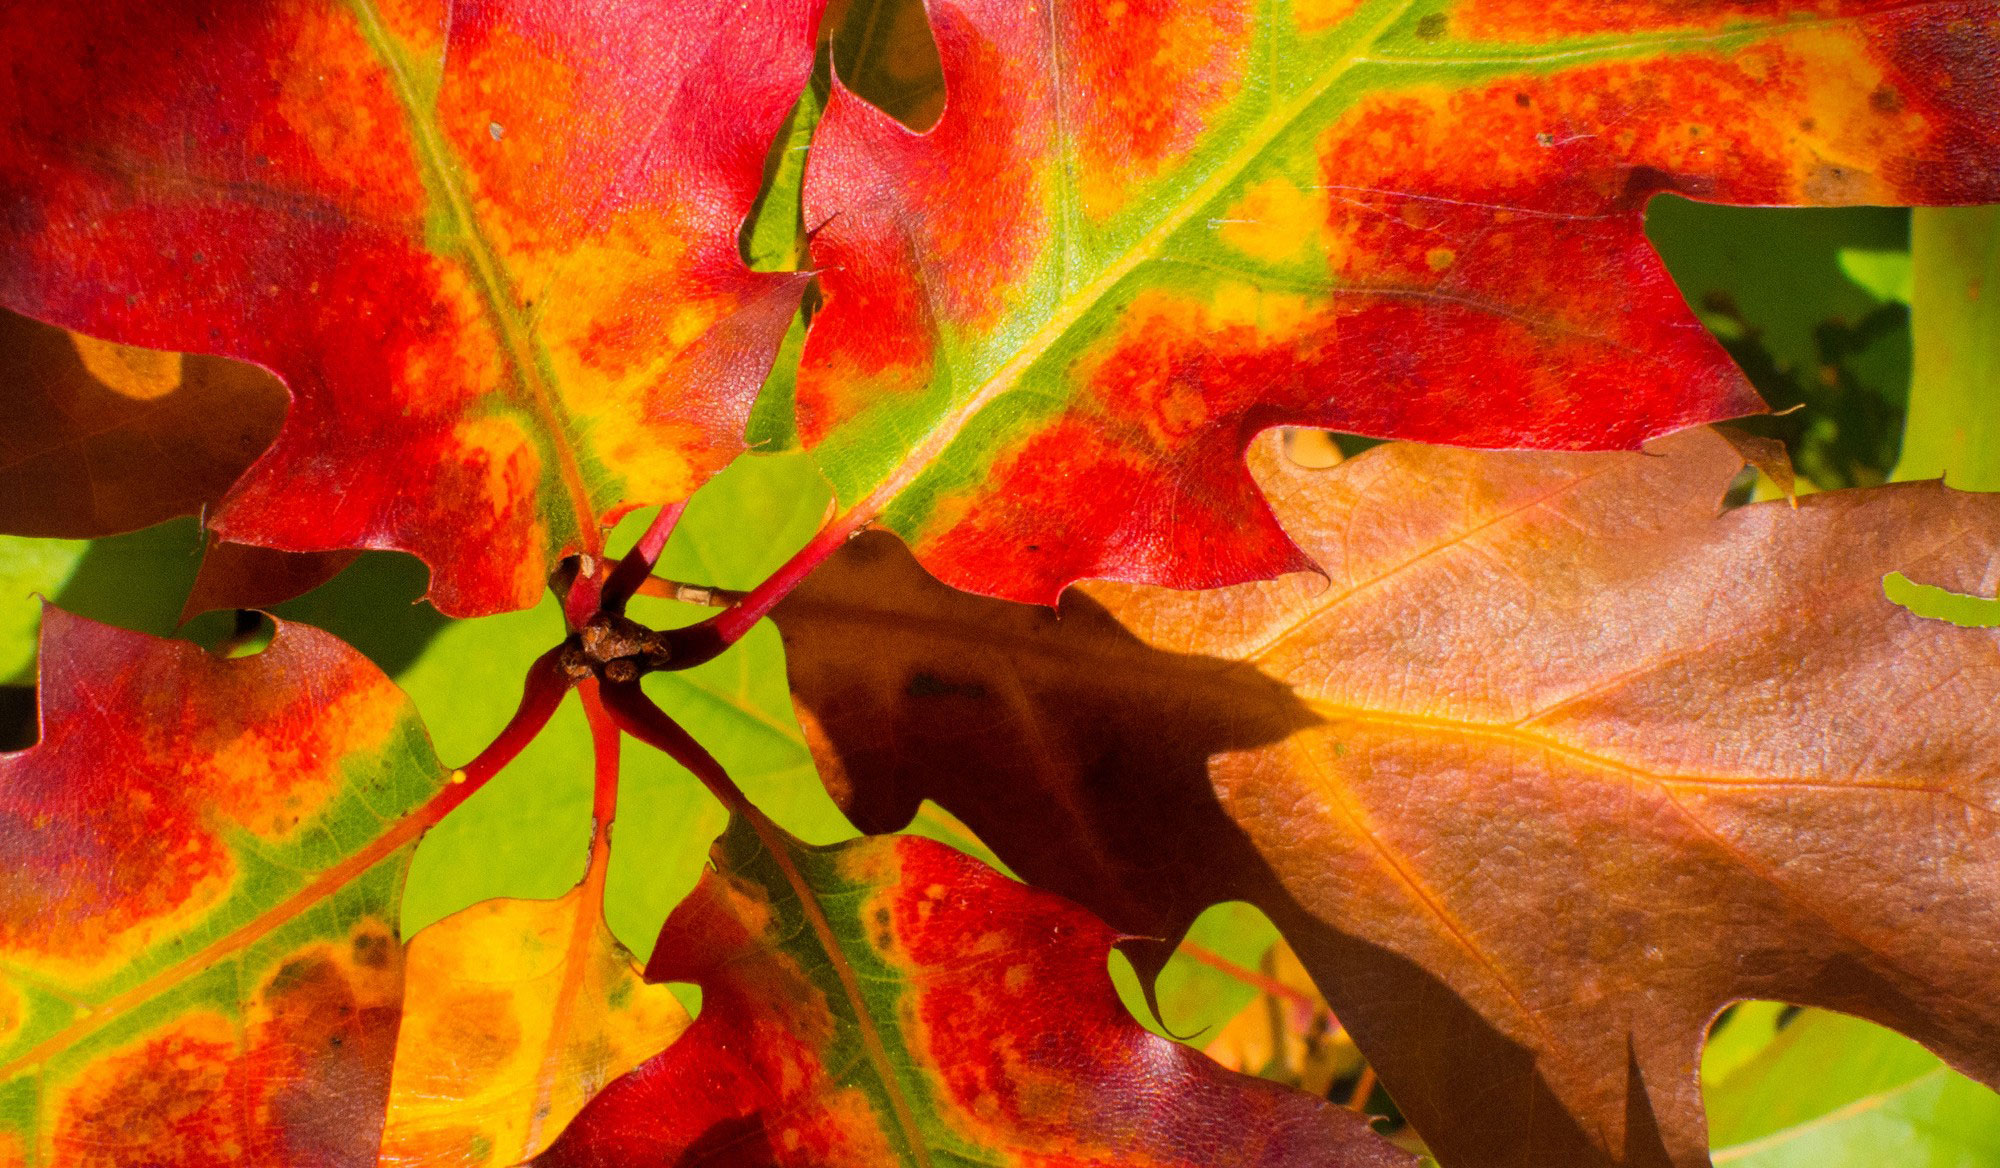 Gorgeous red, yellow, and green autumn leaves from enneafive of Flickr